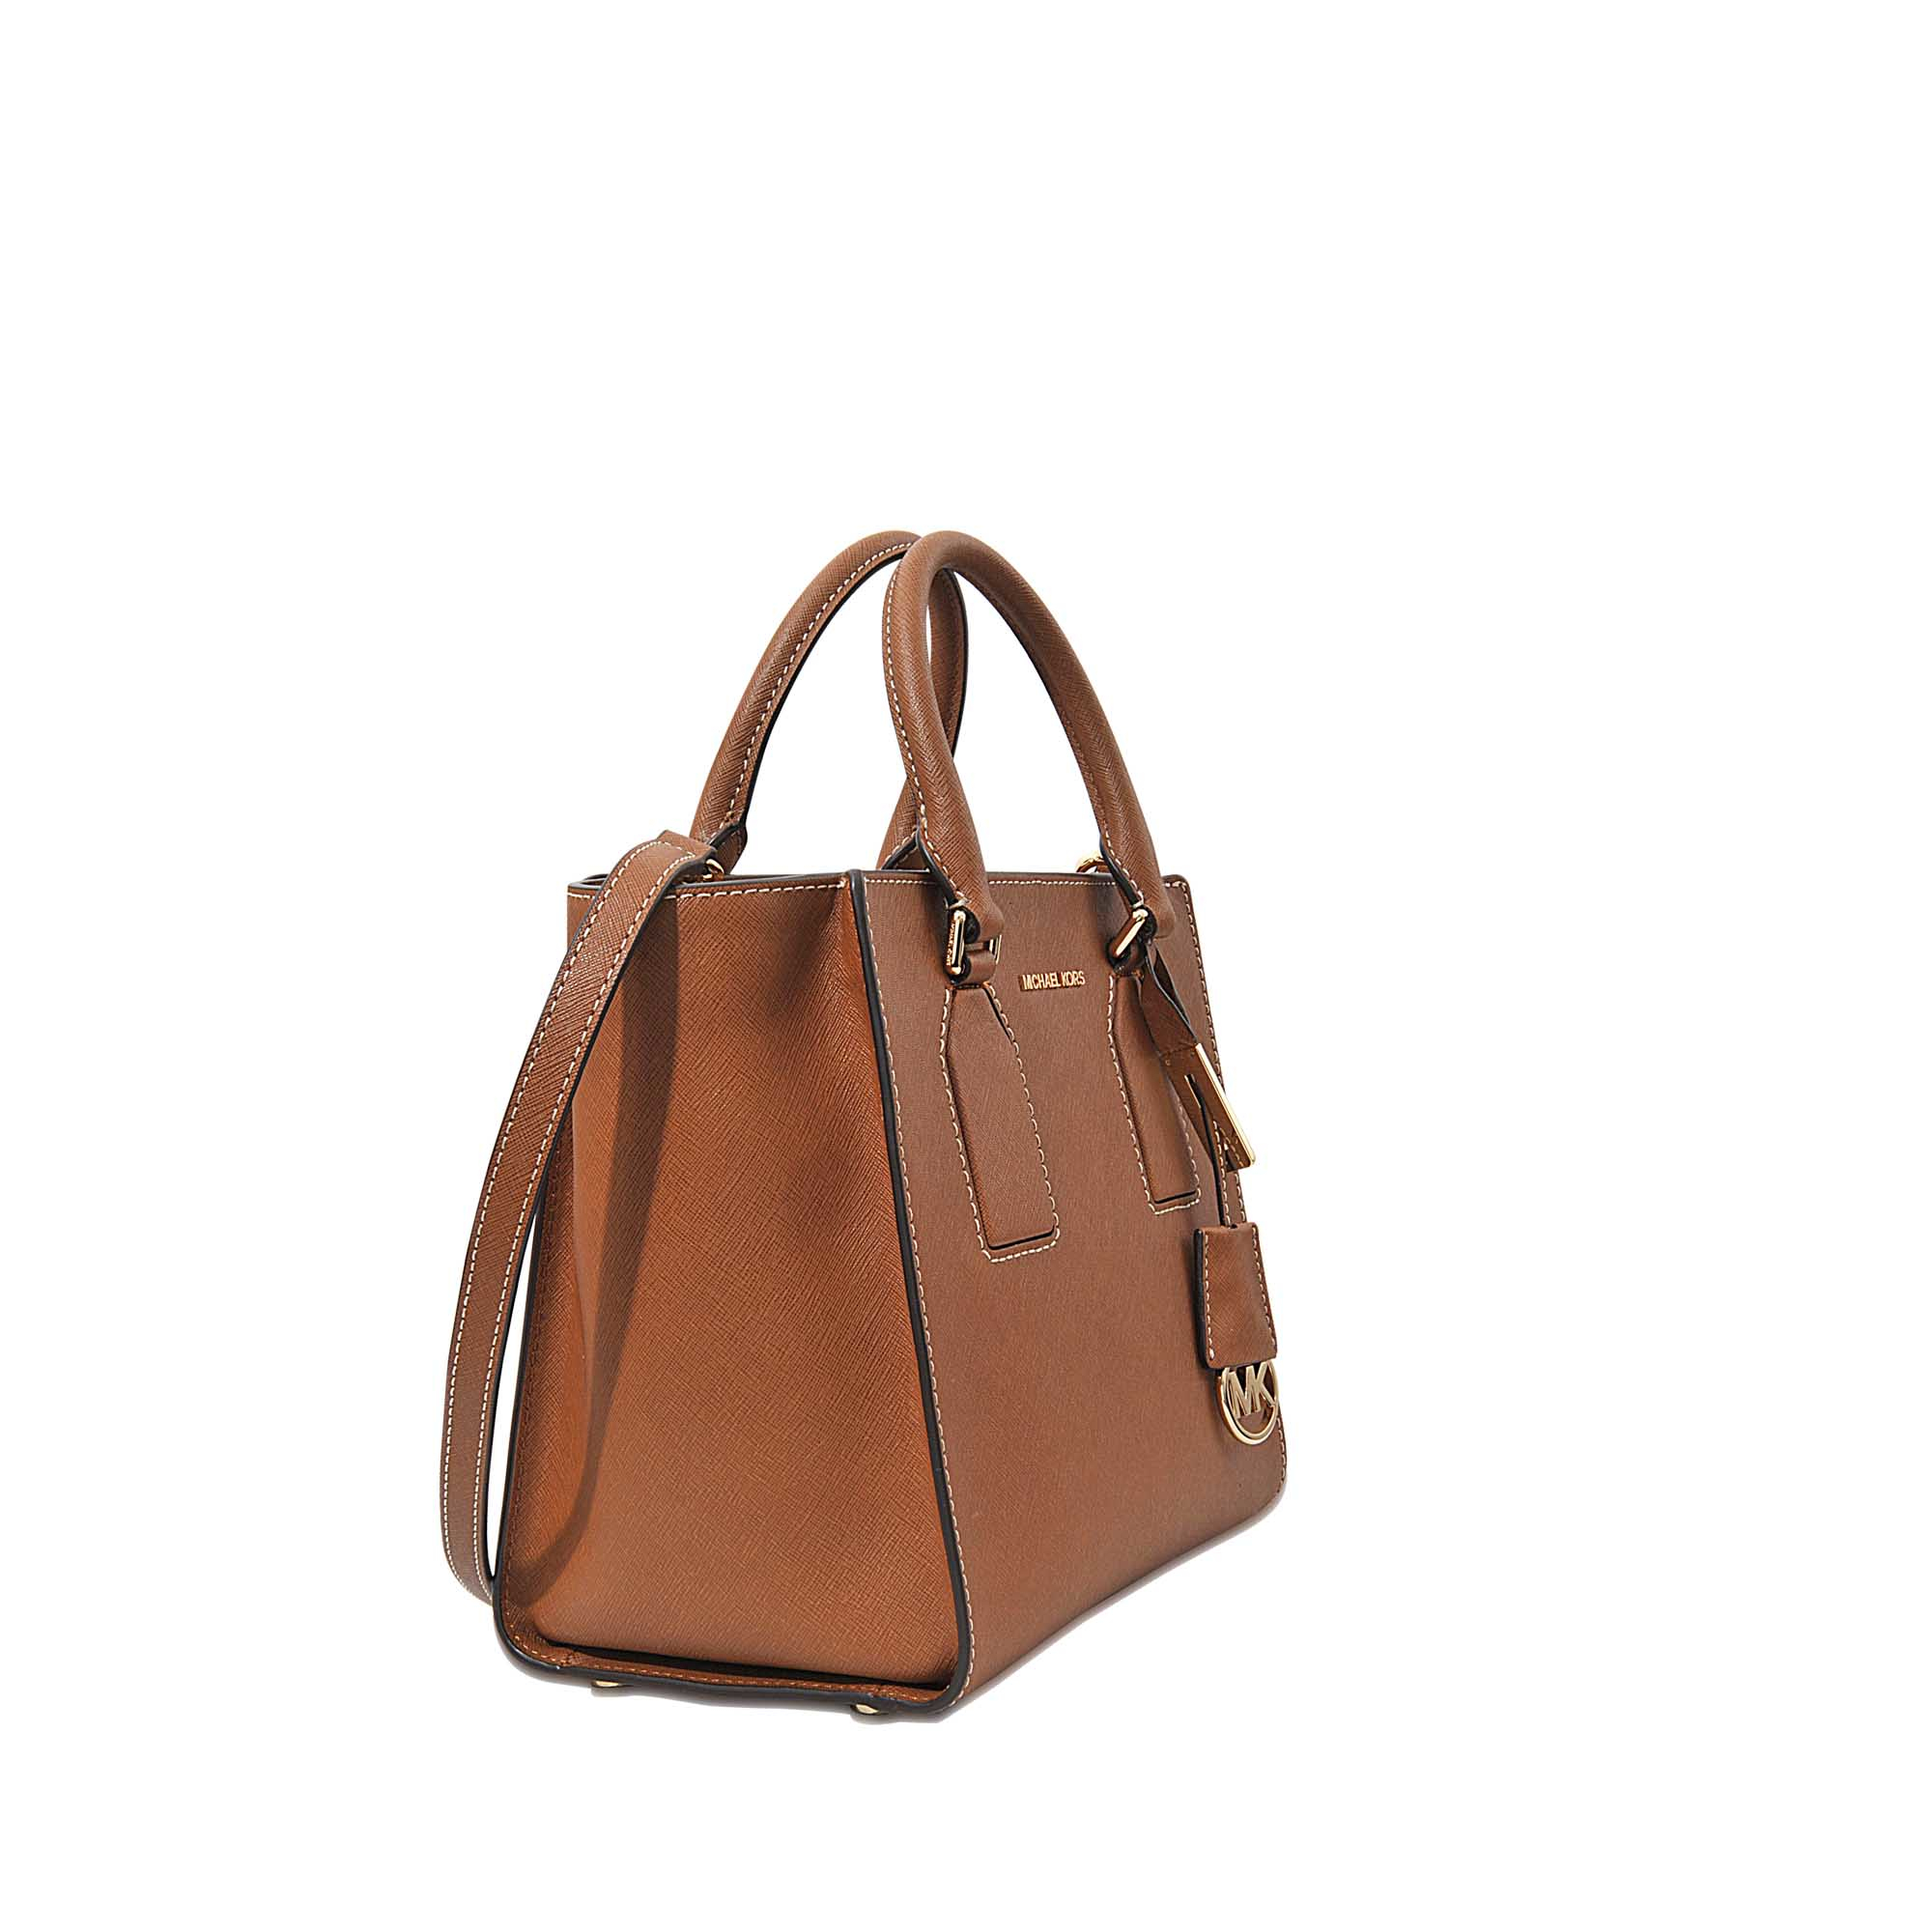 02935b1a313d Lyst - MICHAEL Michael Kors Selby Medium Satchel in Brown